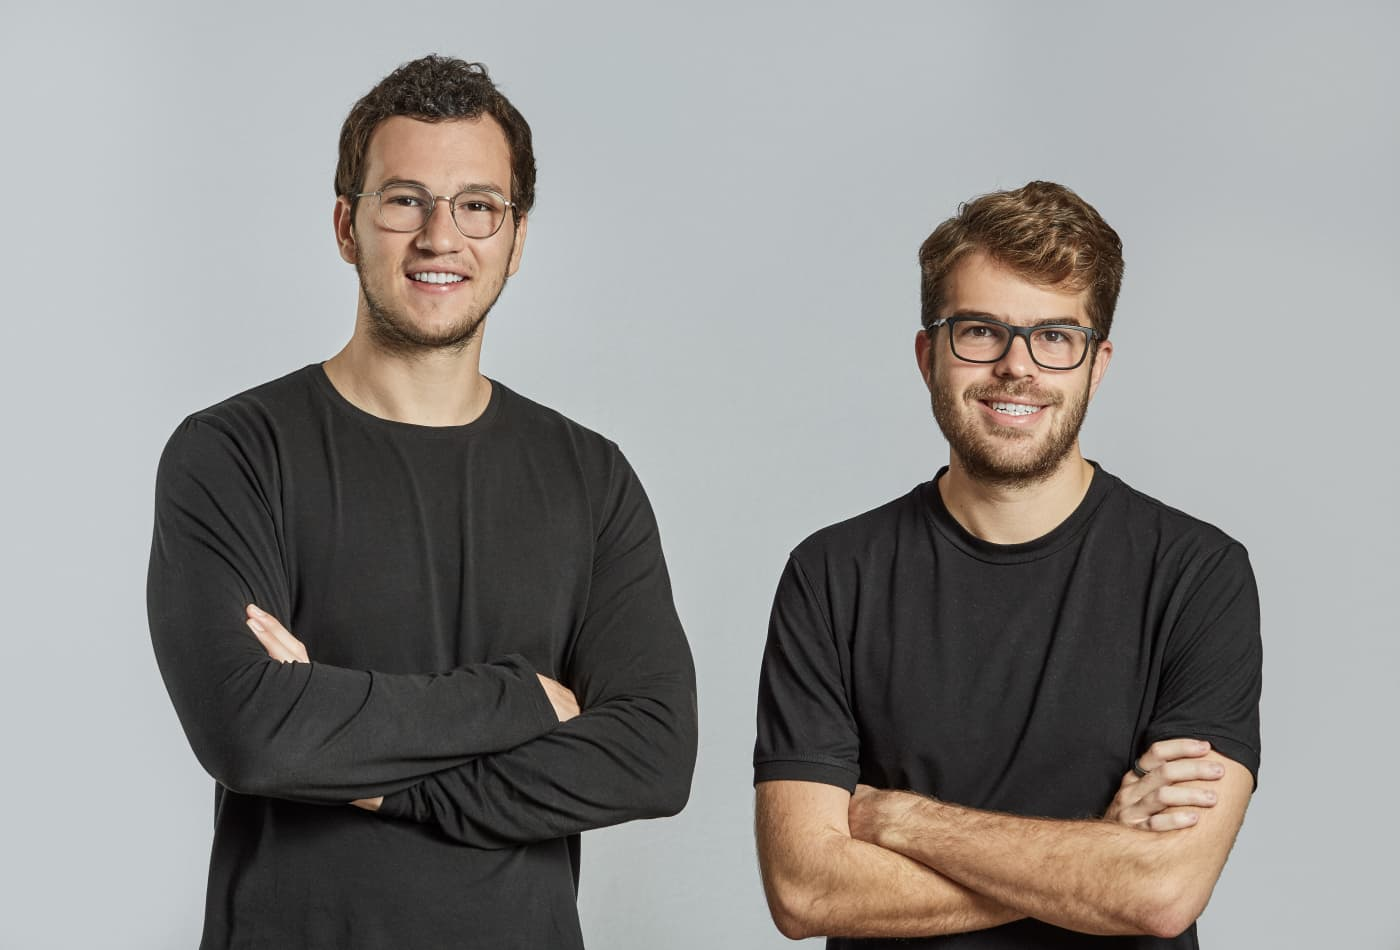 How Brex's co-founders went from teens hacking iPhones and video games to running a $7 billion start-up